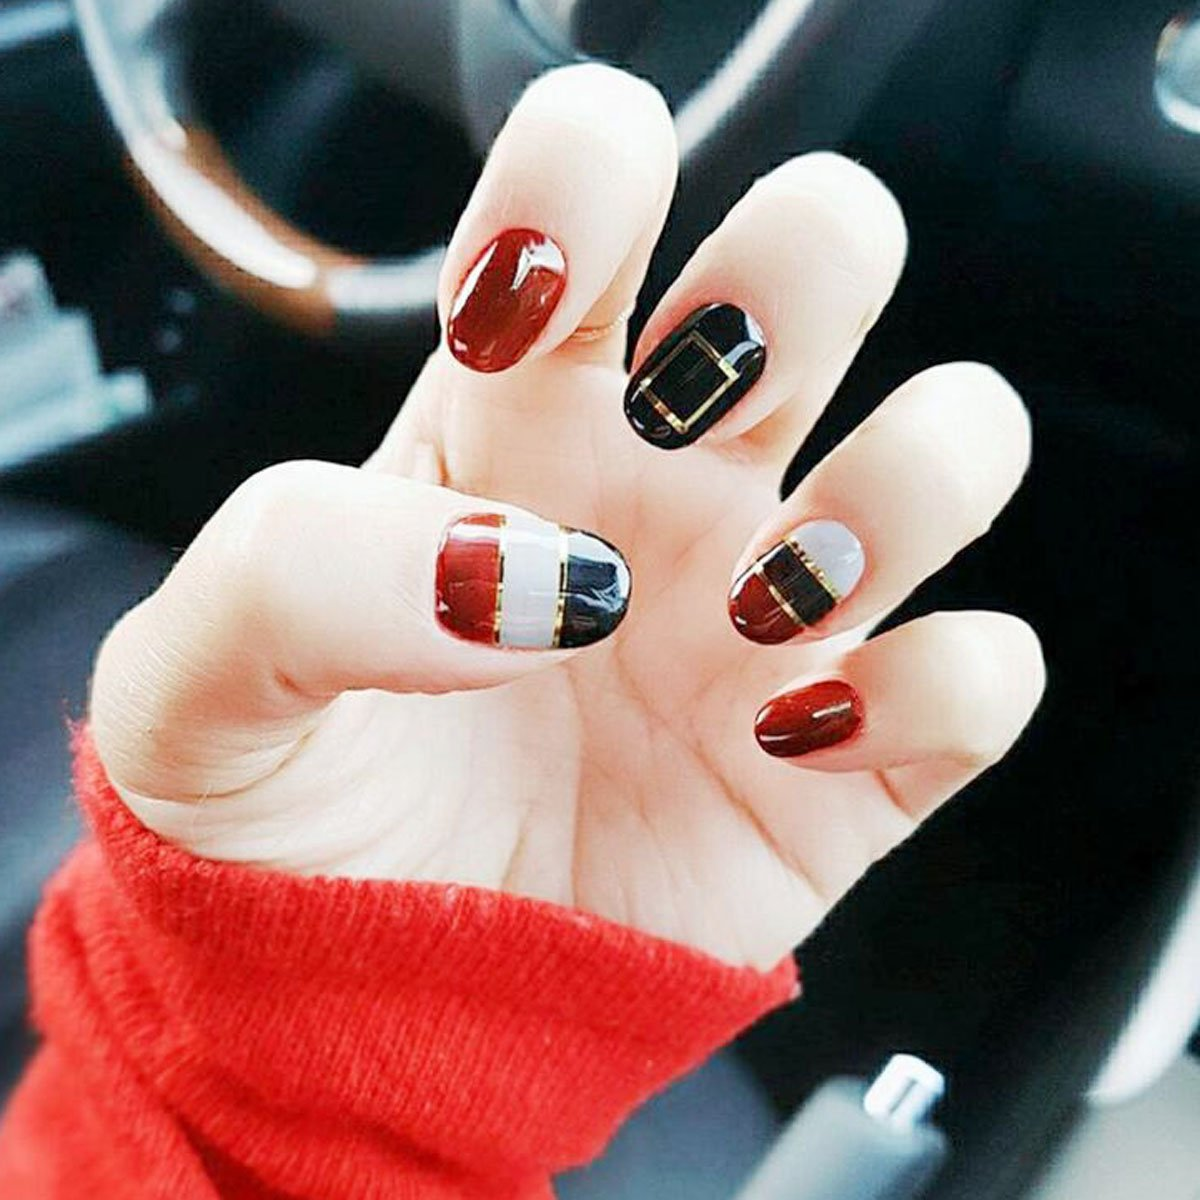 Yean False Nails 24Pcs/Set Fake Nails Bridal Full Cover Medium Oval Red and Black Glitter Nail Tips with Design Press on Nails with Glue and Adhesive Tab for Women and Girls